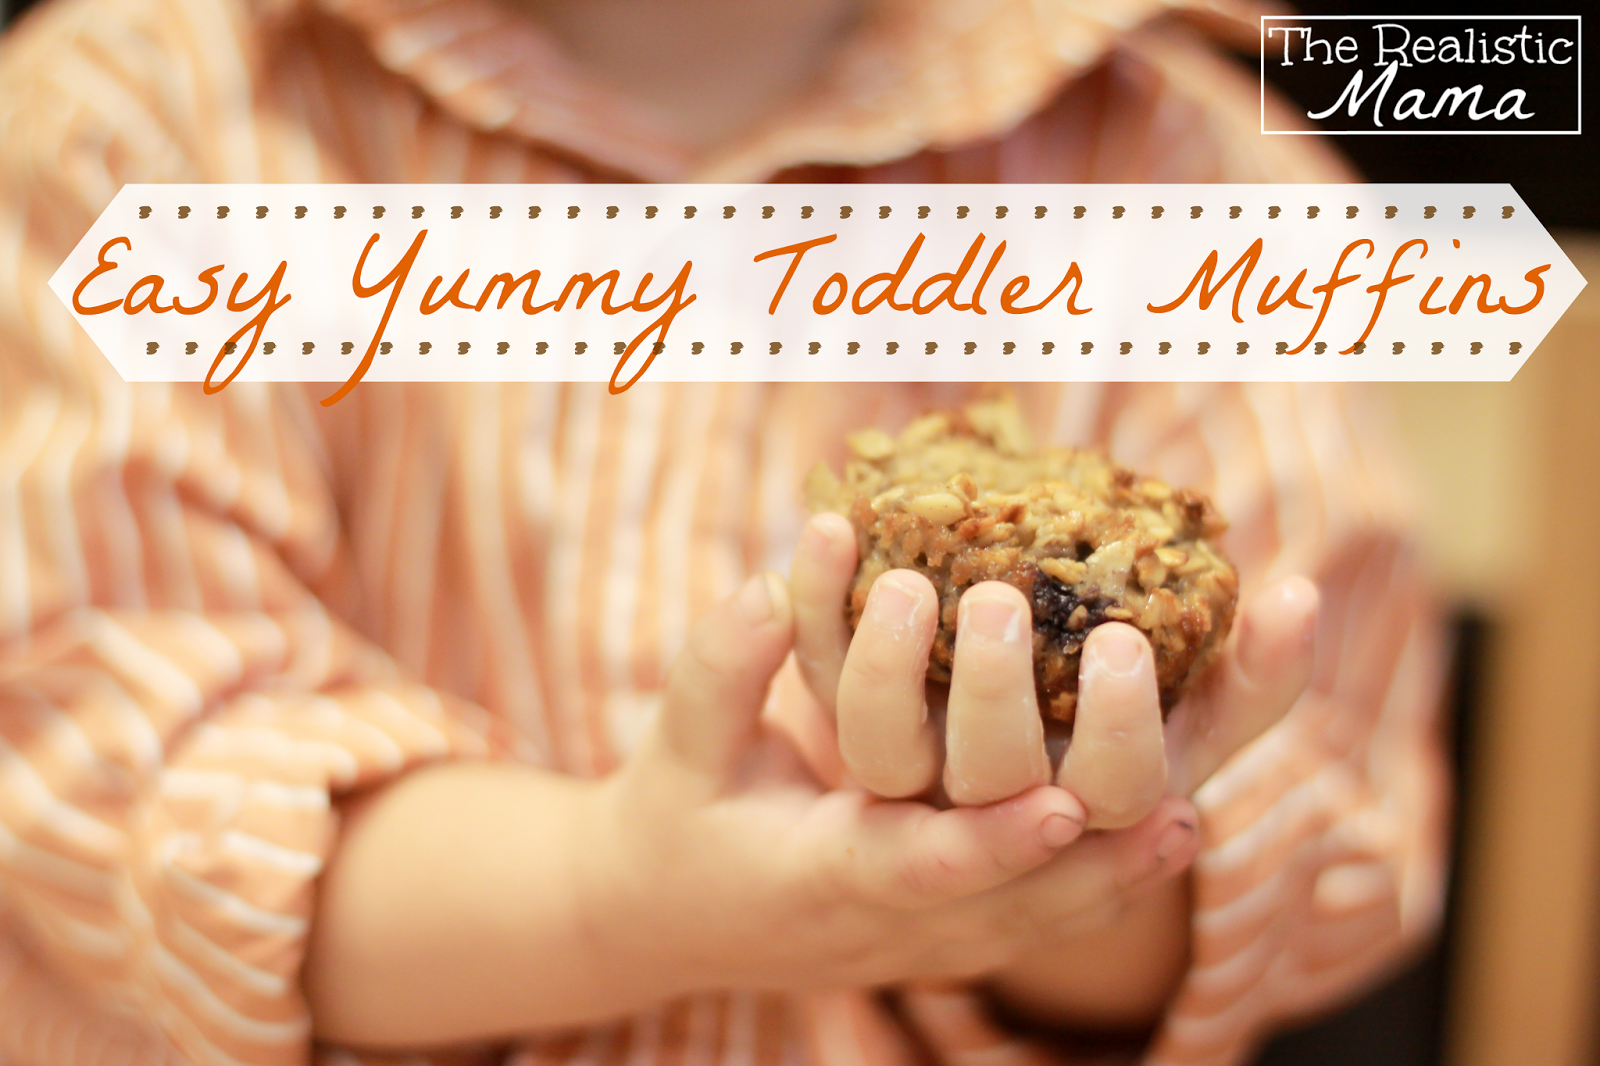 Easy Yummy Toddler Muffins